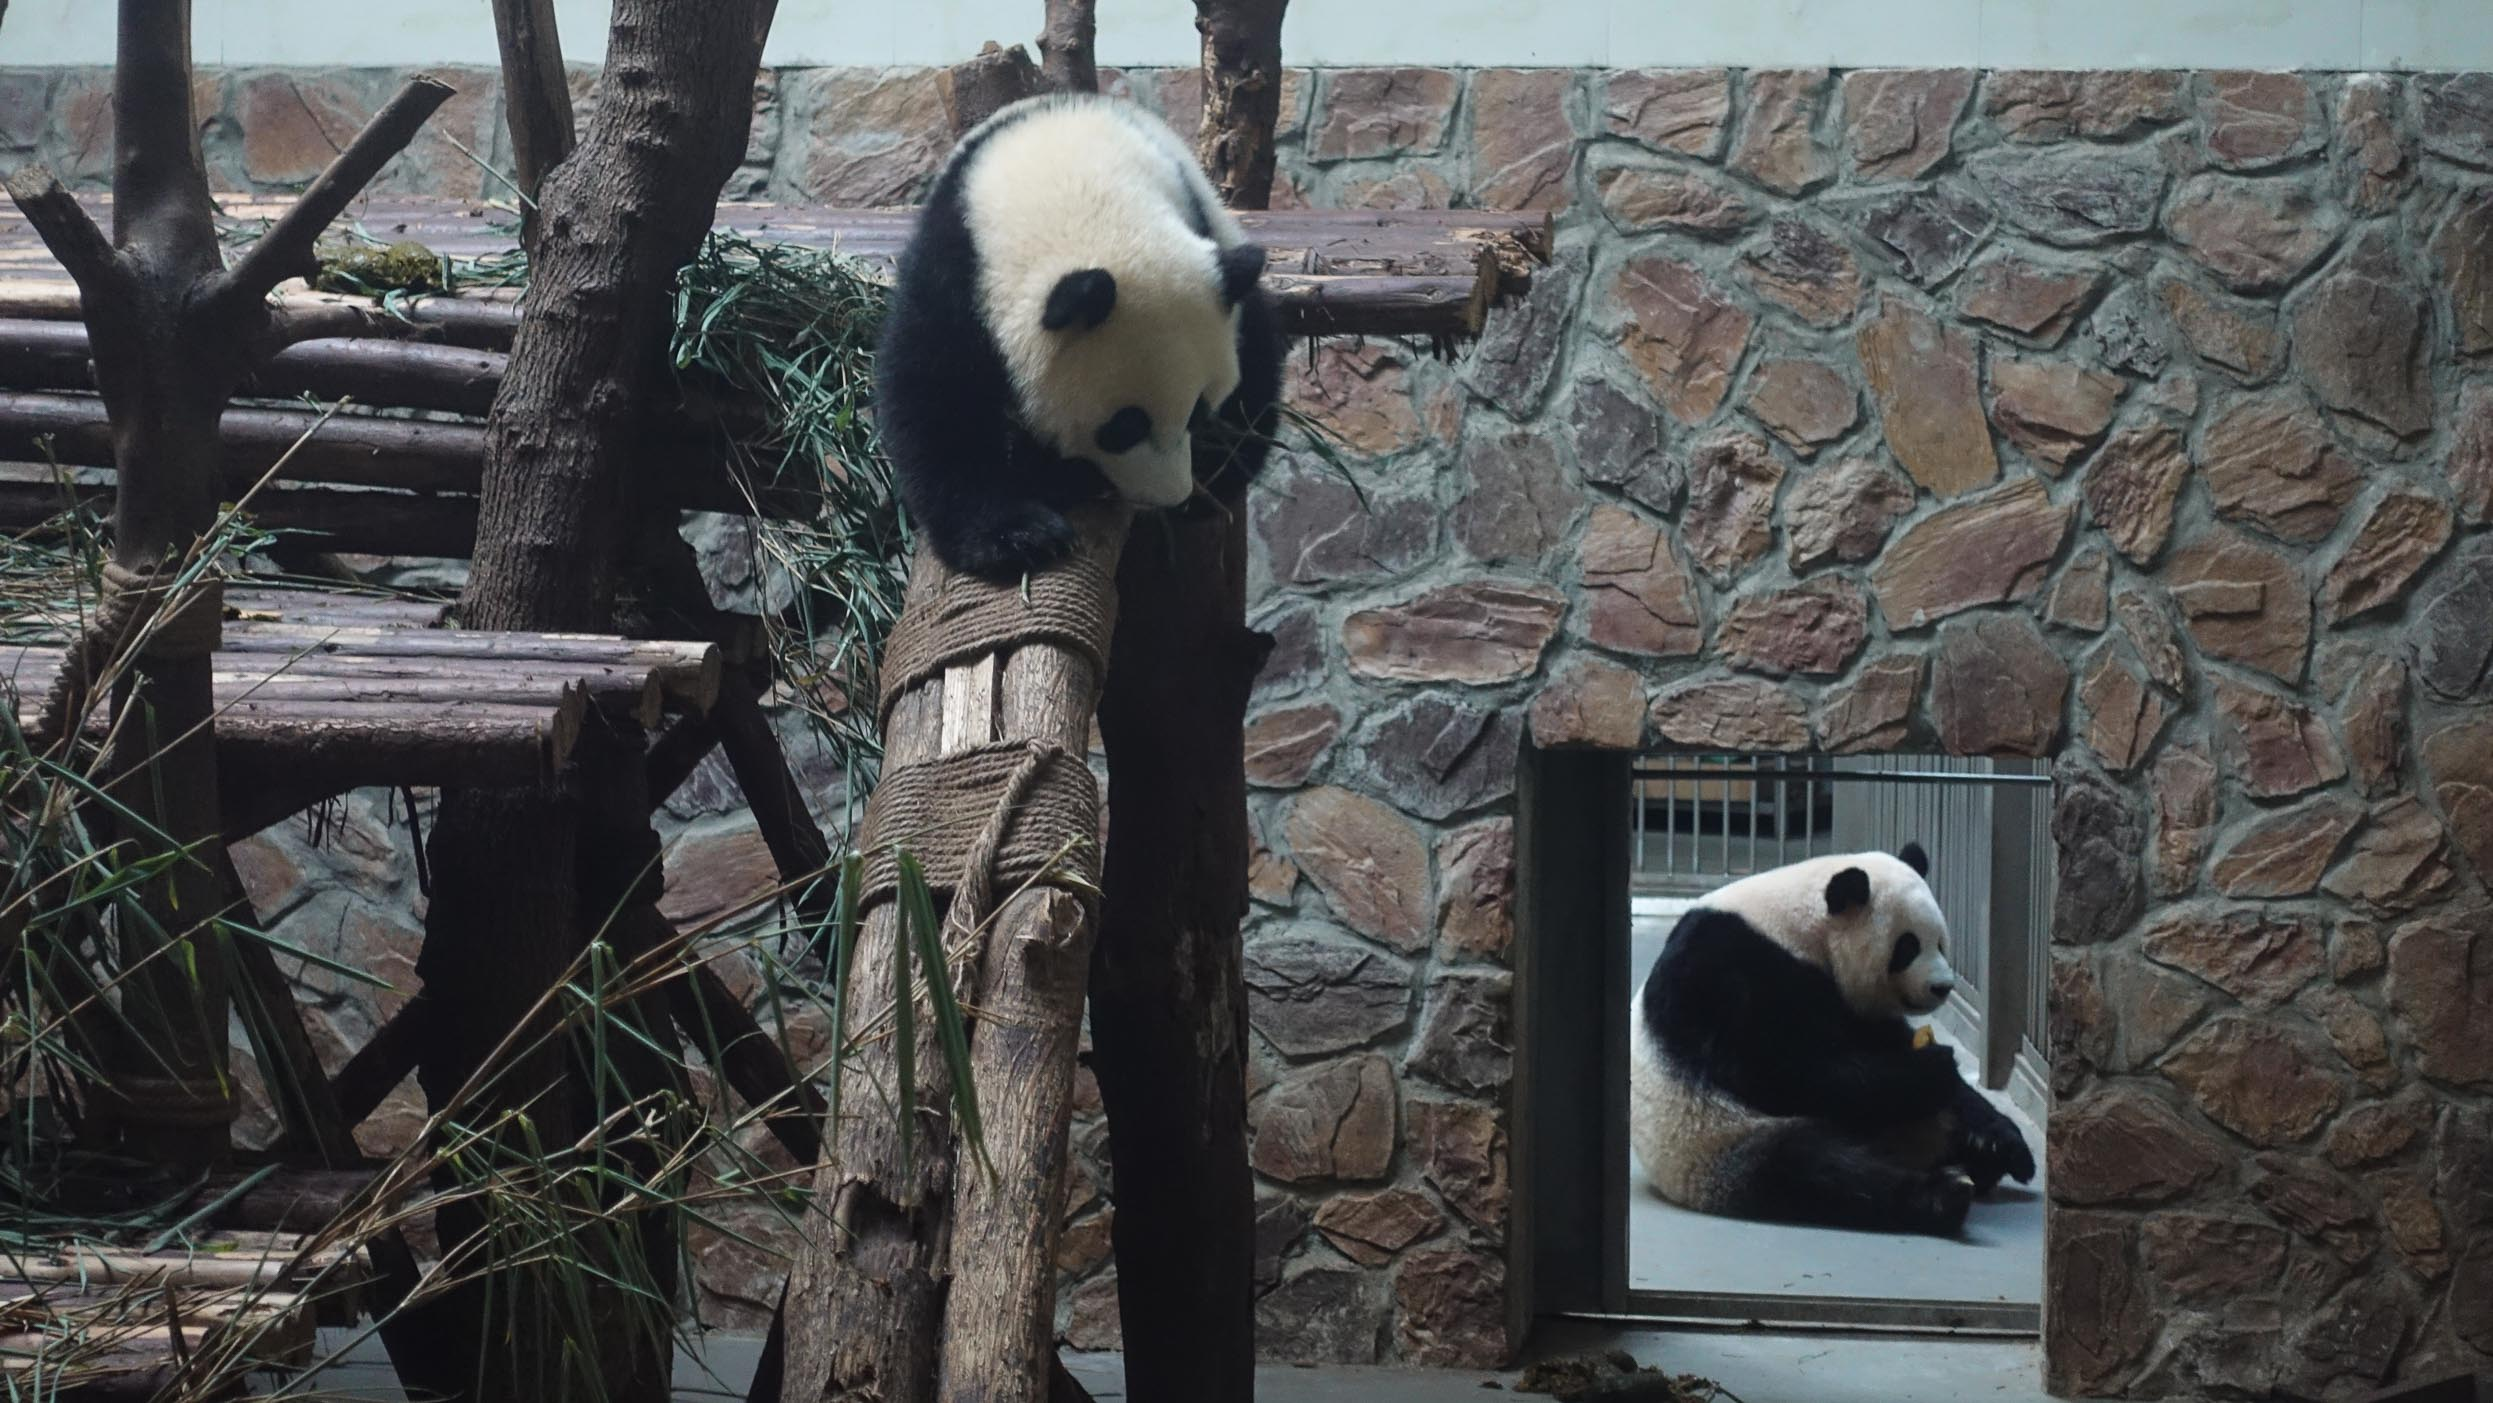 Pandas getting ready to eat